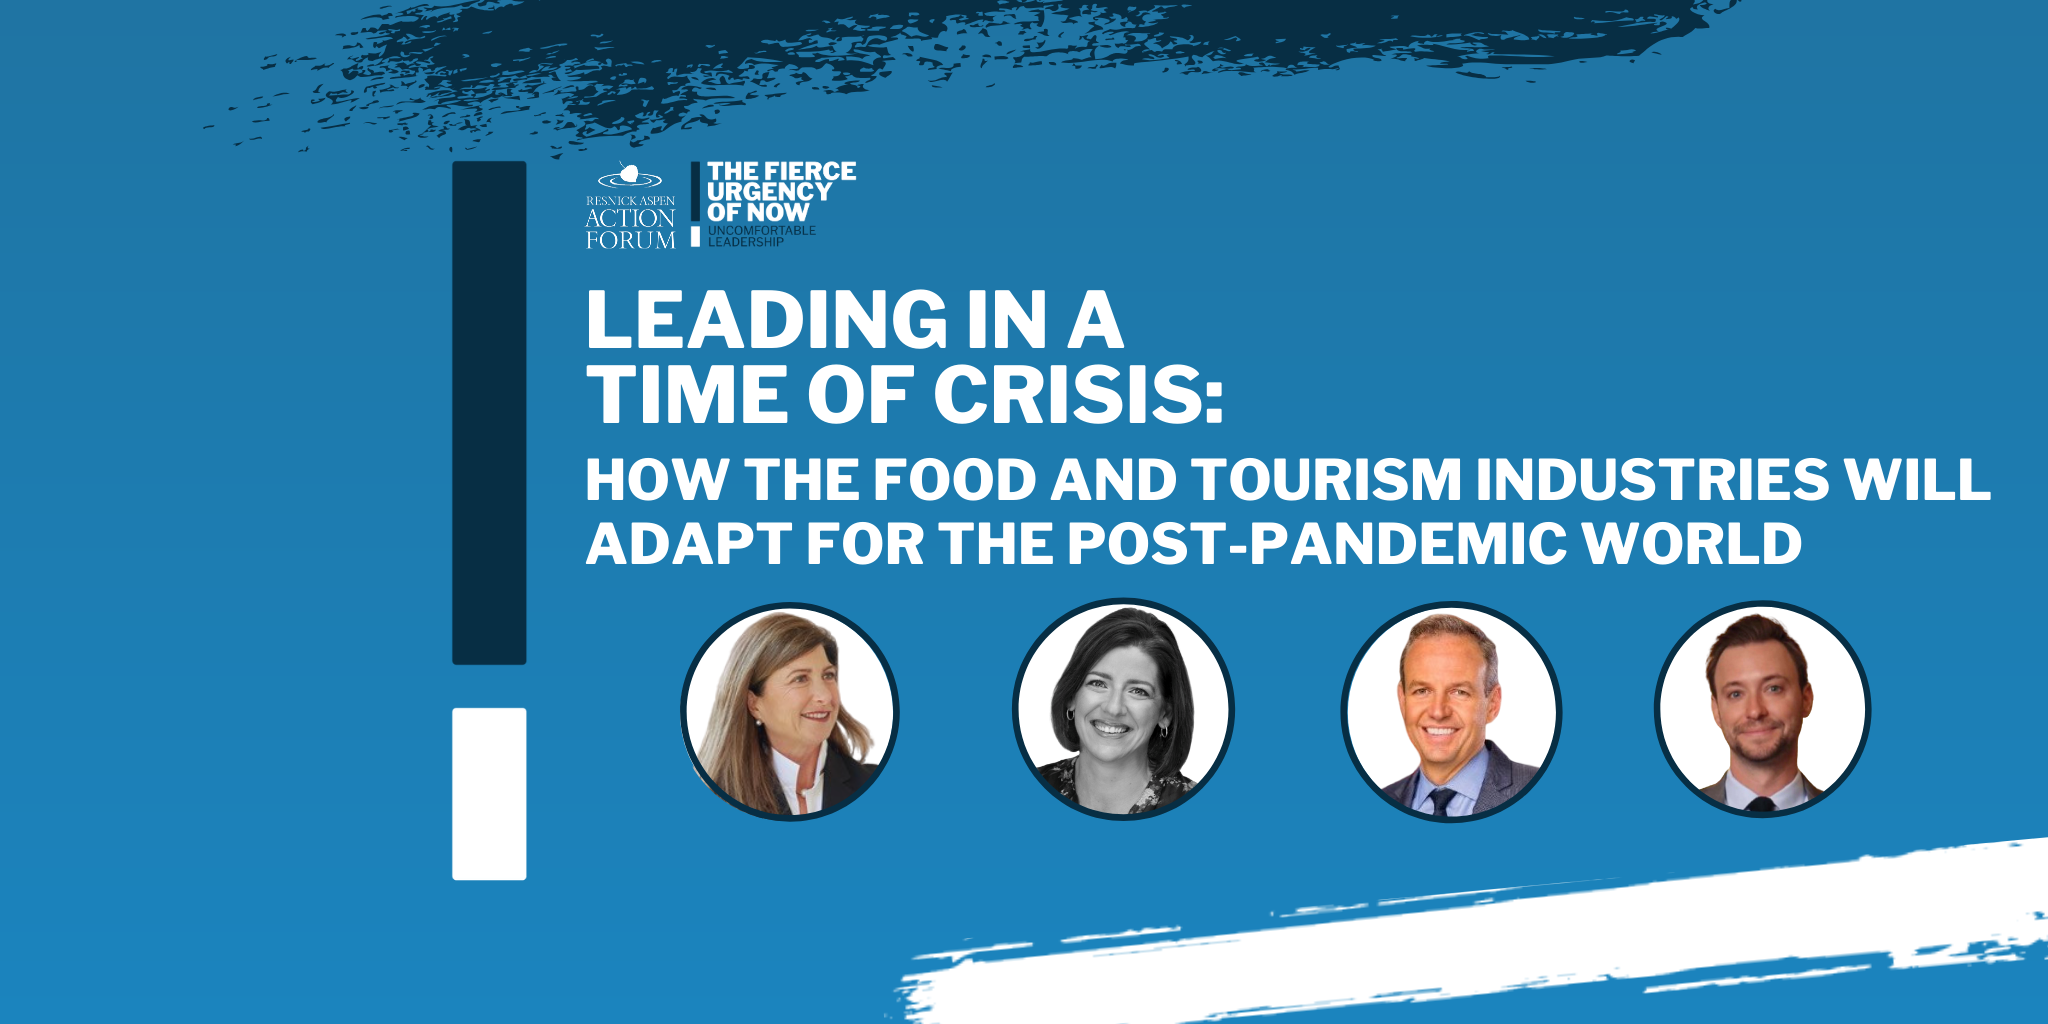 Leading with Values: How the Food and Tourism Industries will Adapt for the Post-Pandemic World